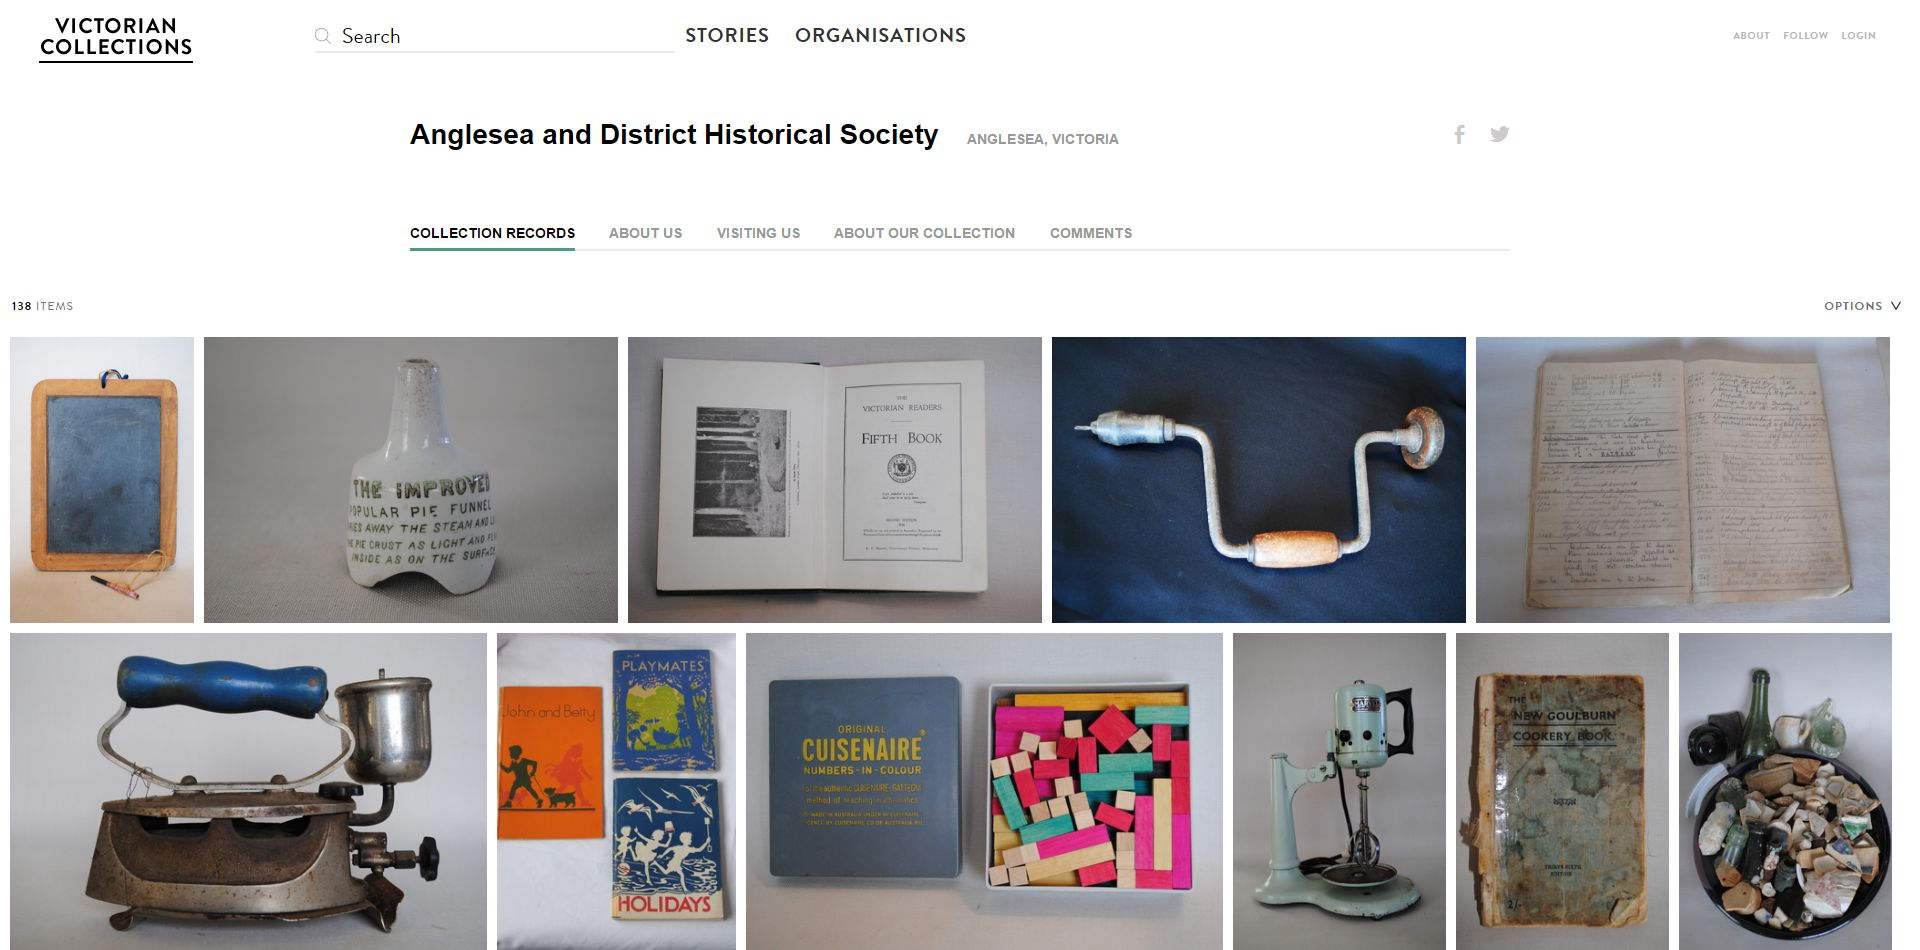 Screenshot of varied items displayed on Victorian Collections website including books and cuisinaire rods